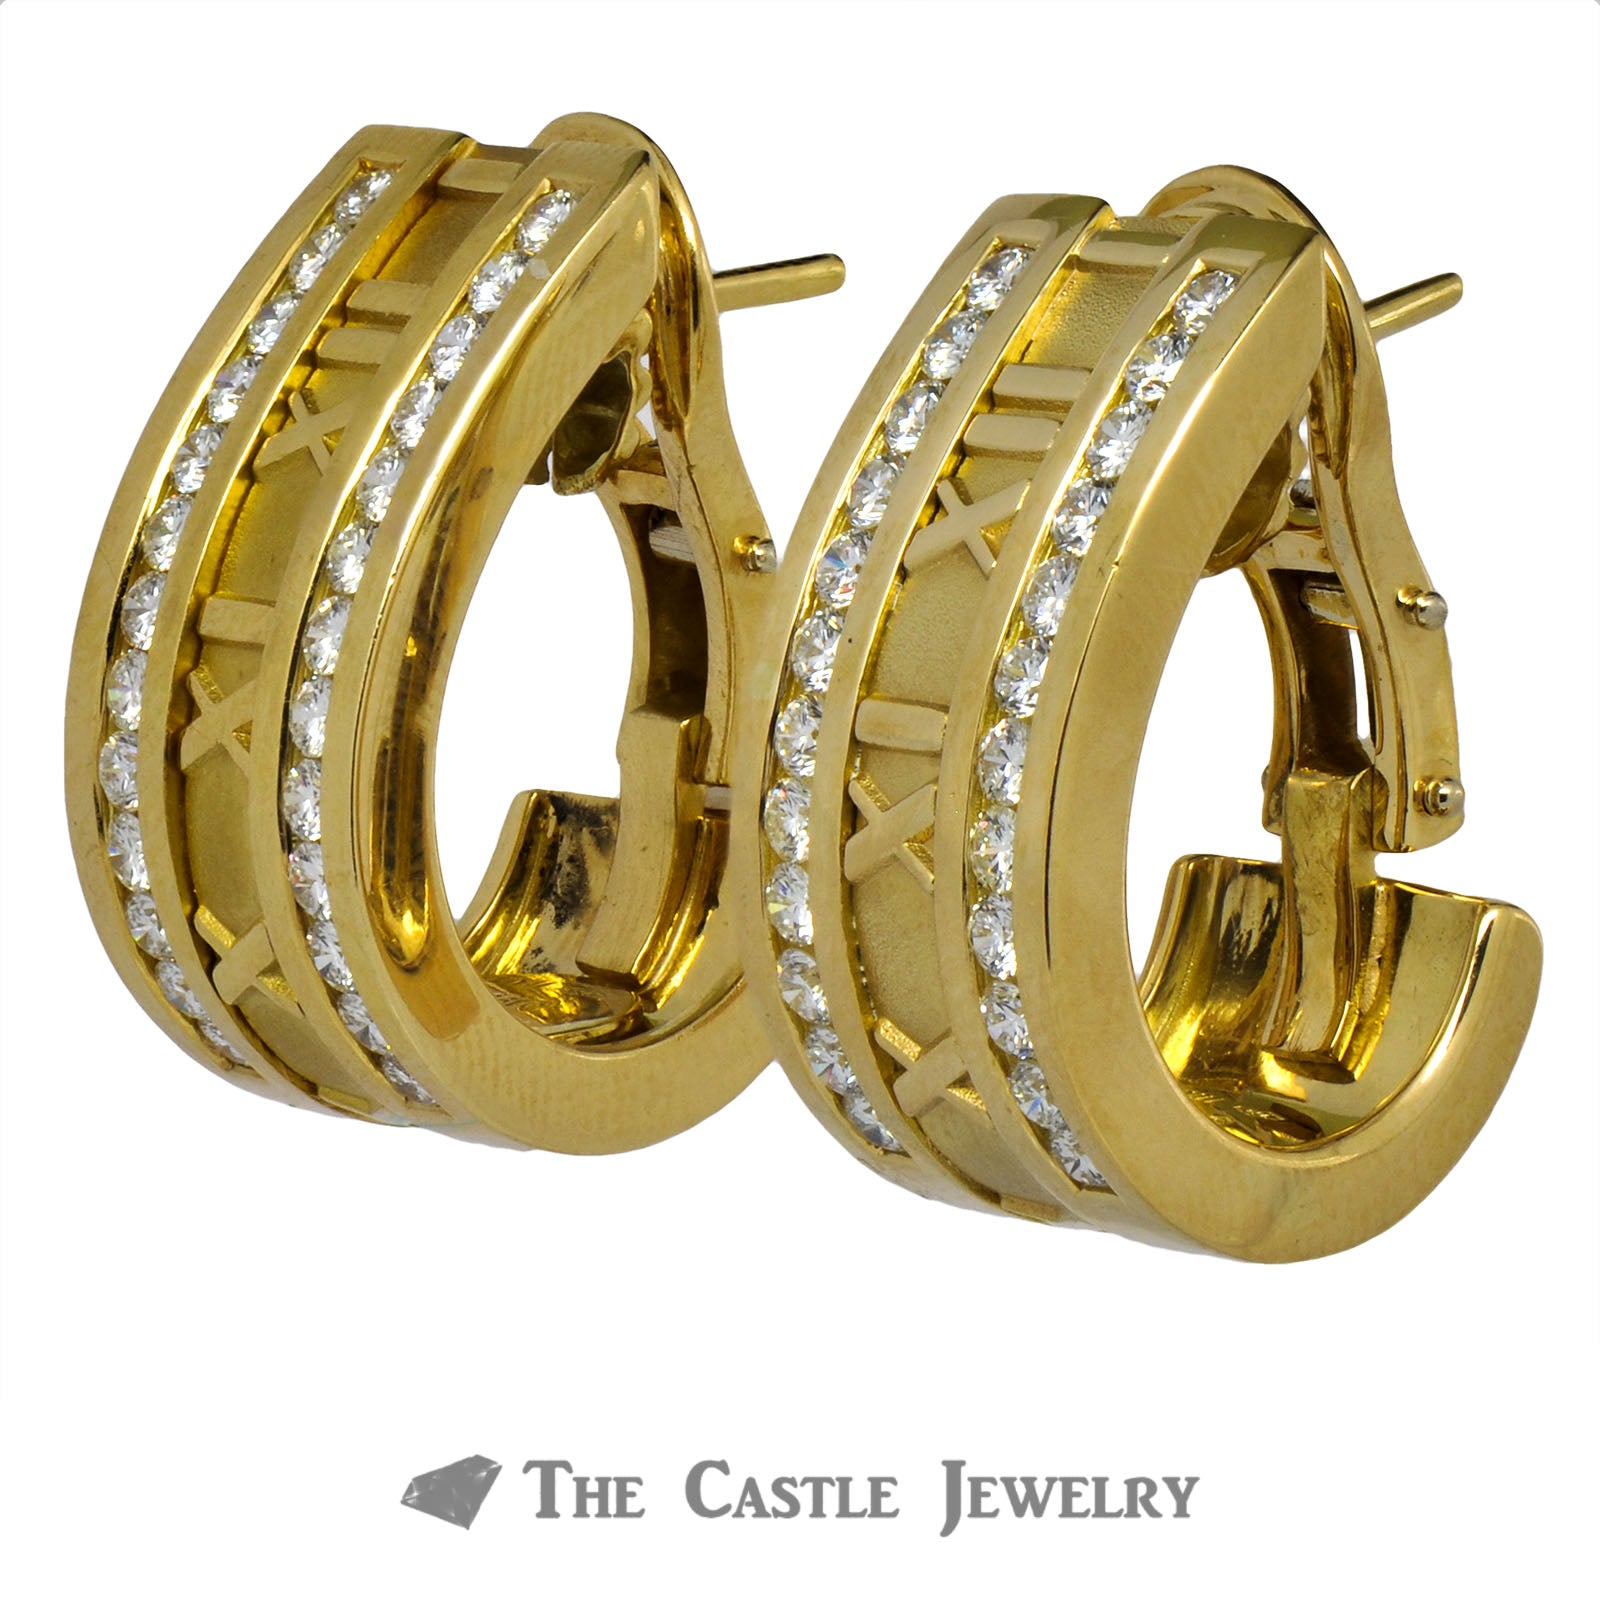 Tiffany & Co. Atlas Hoops/Modifiable Clip-on Earrings with Roman Numerals